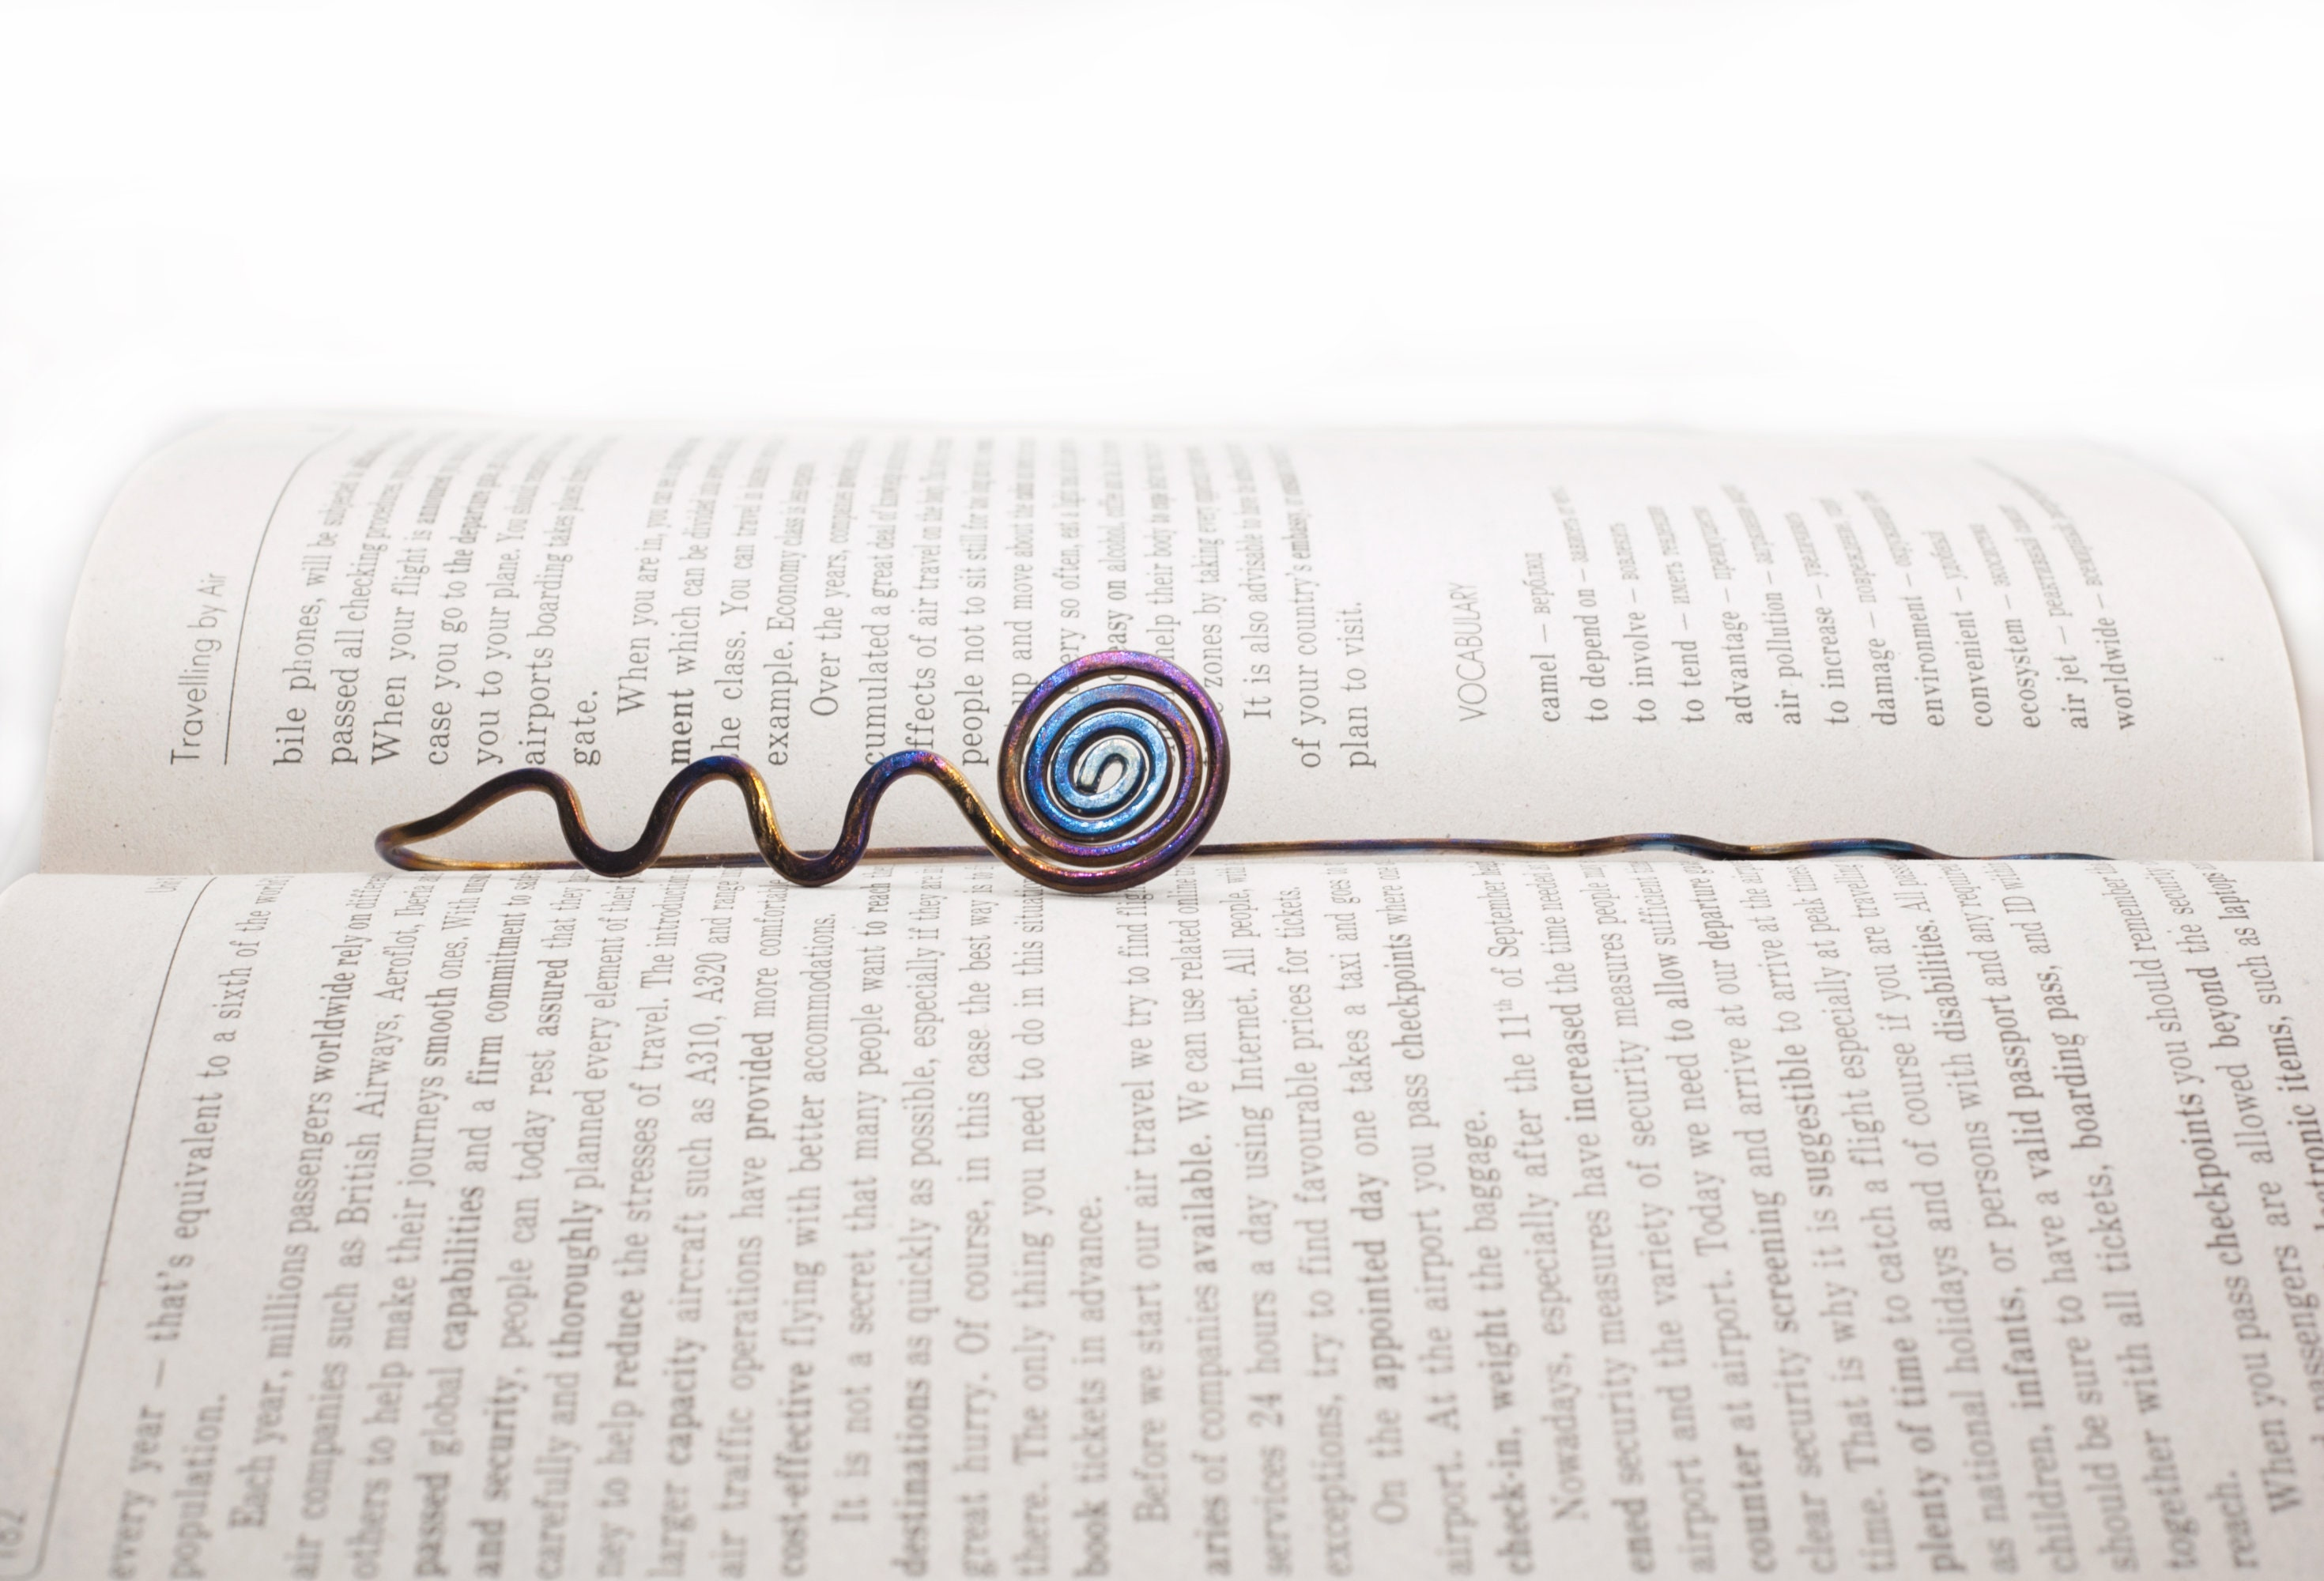 Metal Bookmark - Unique Bookmarks - Spiral Bookmark - Bookworm Gifts -  Literary Gifts - Bookish Gifts - Celtic Bookmarks